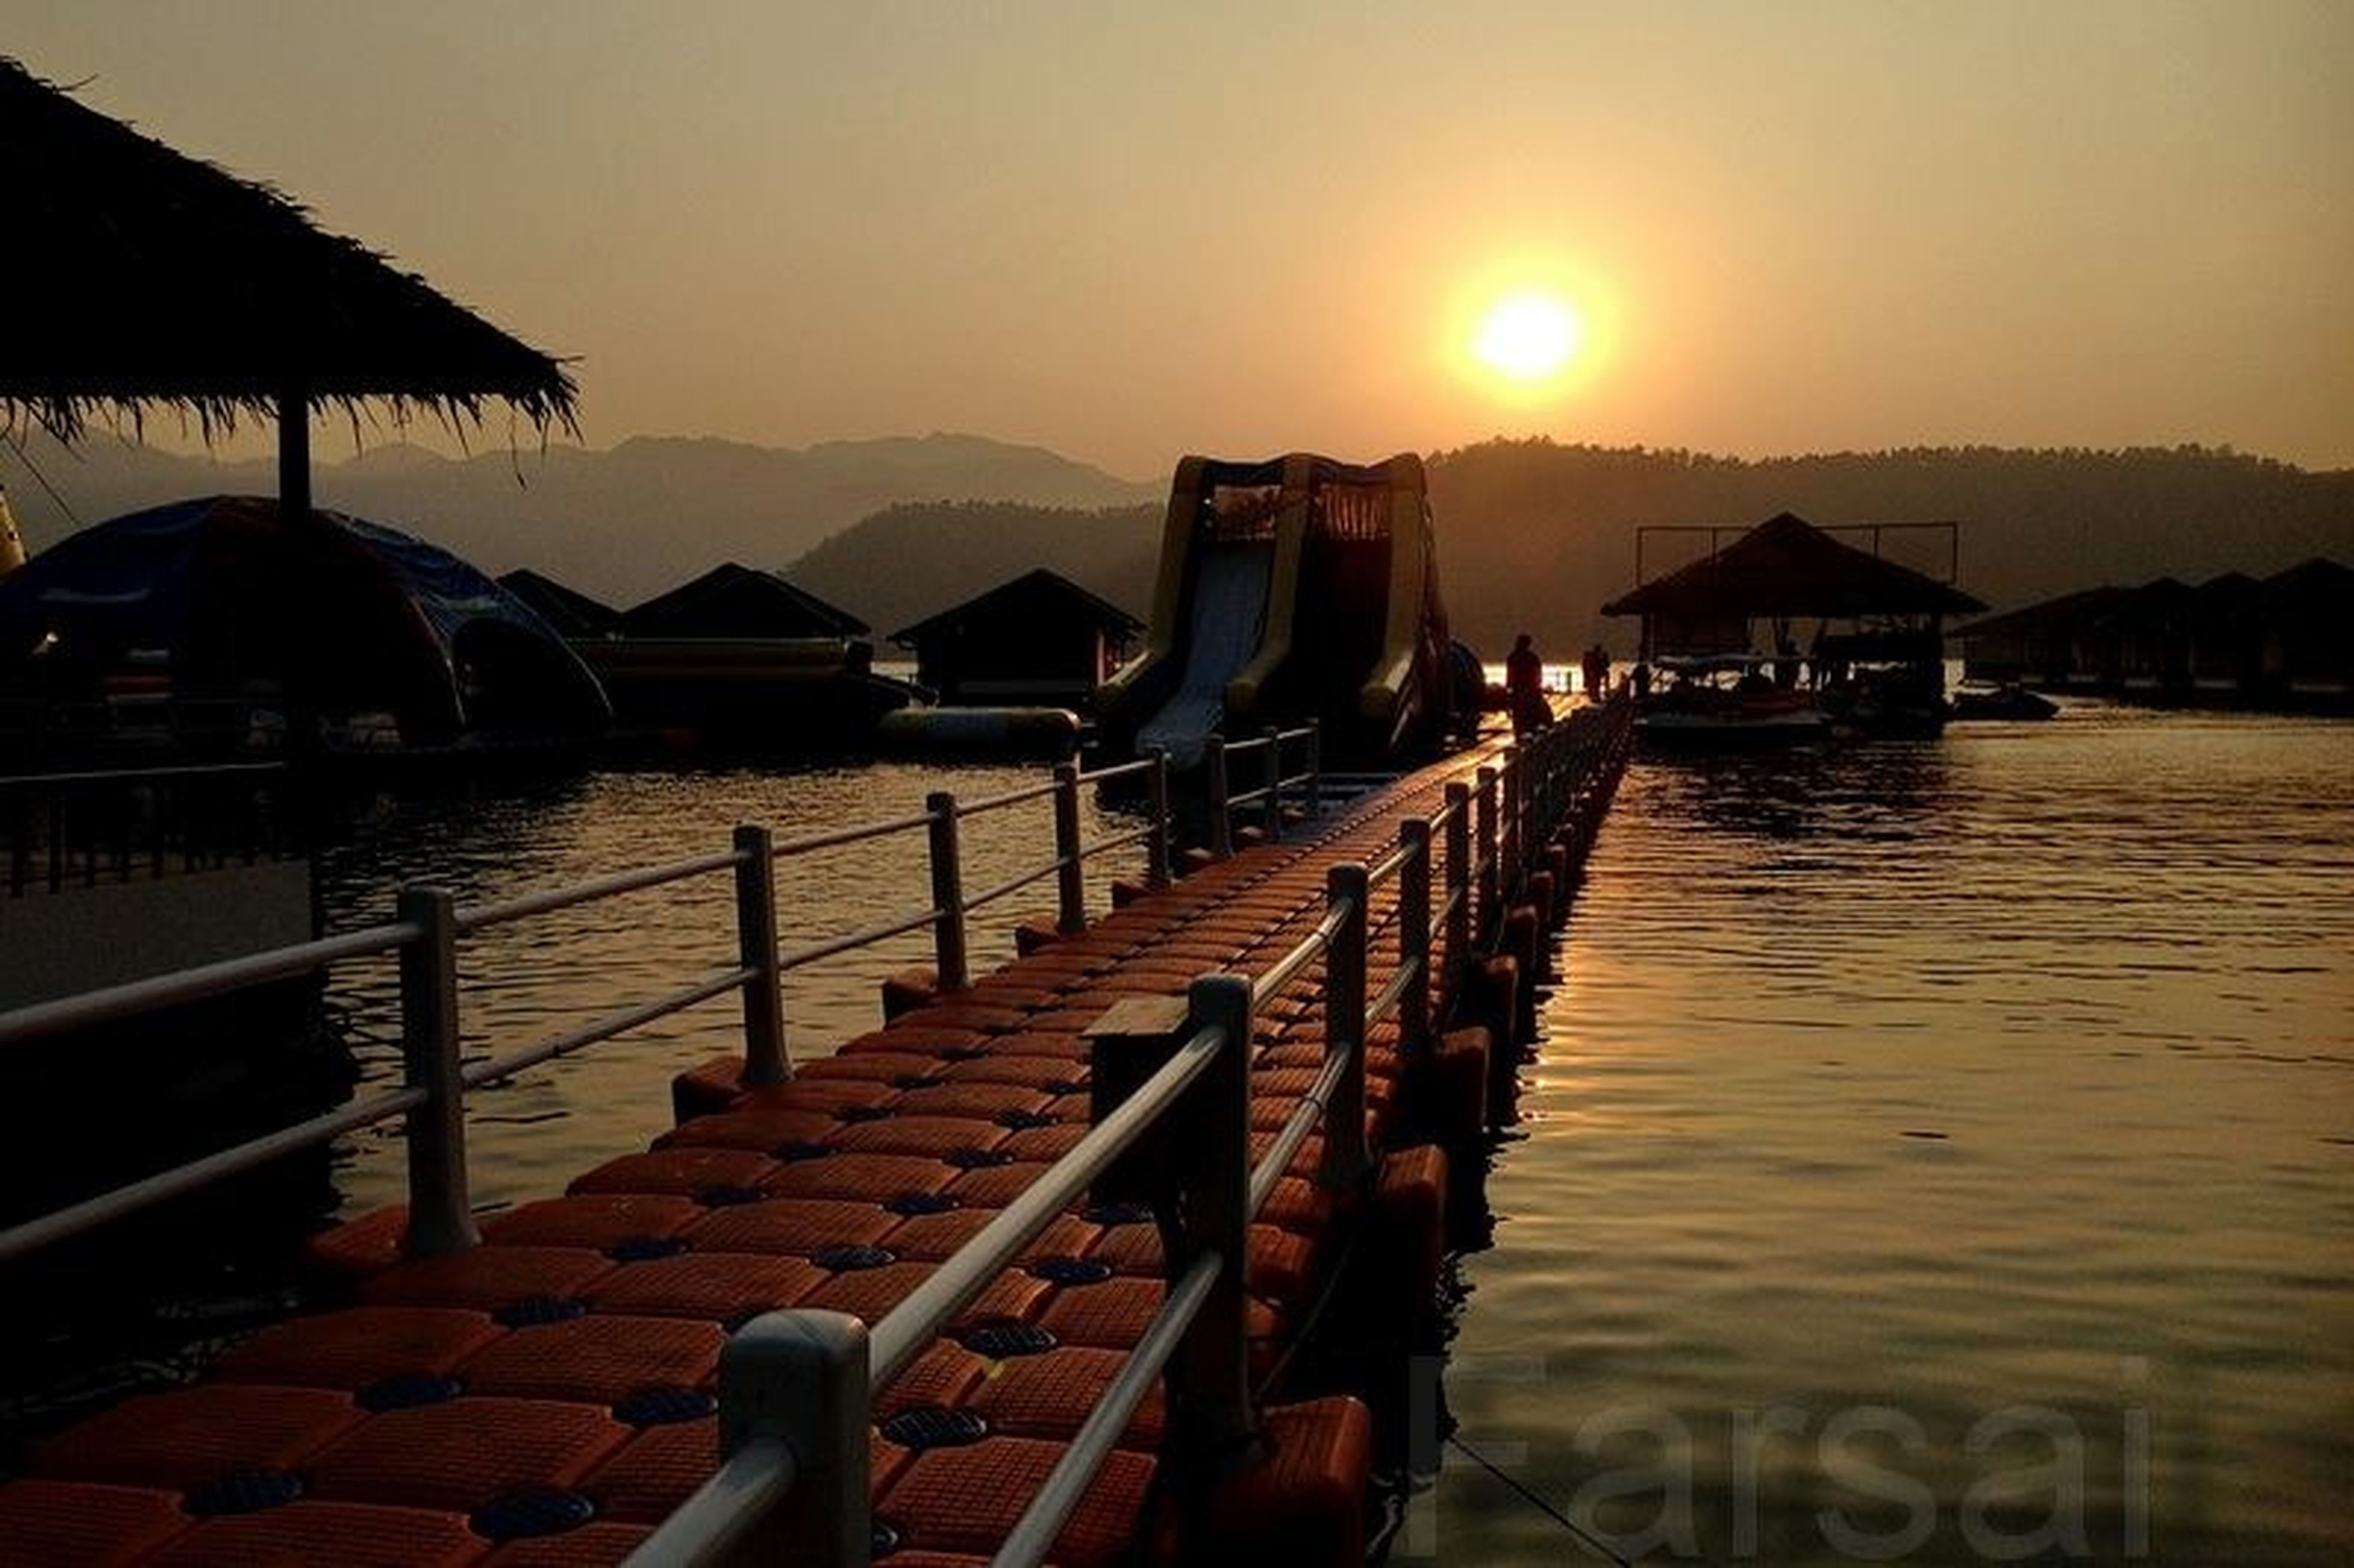 sunset, water, mountain, pier, scenics, tranquility, silhouette, tranquil scene, clear sky, mountain range, beauty in nature, sun, lake, sea, railing, nature, orange color, sky, built structure, transportation